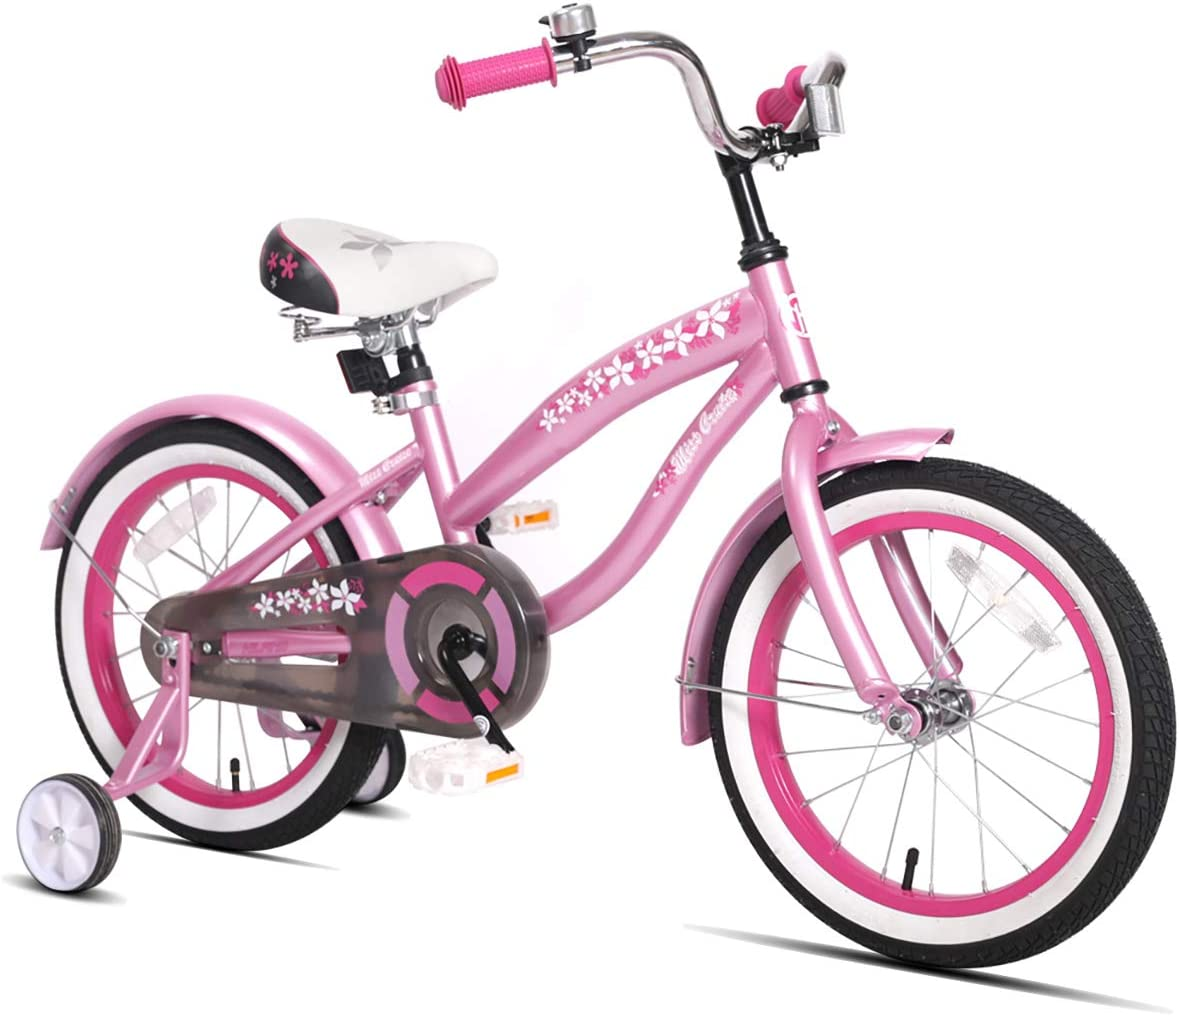 "JOYSTAR 12"" 14"" 16"" Kids Cruiser Bike with Training Wheels for Ages 2-7 Years Old Girls & Boys, Toddler Kids Bicycle"